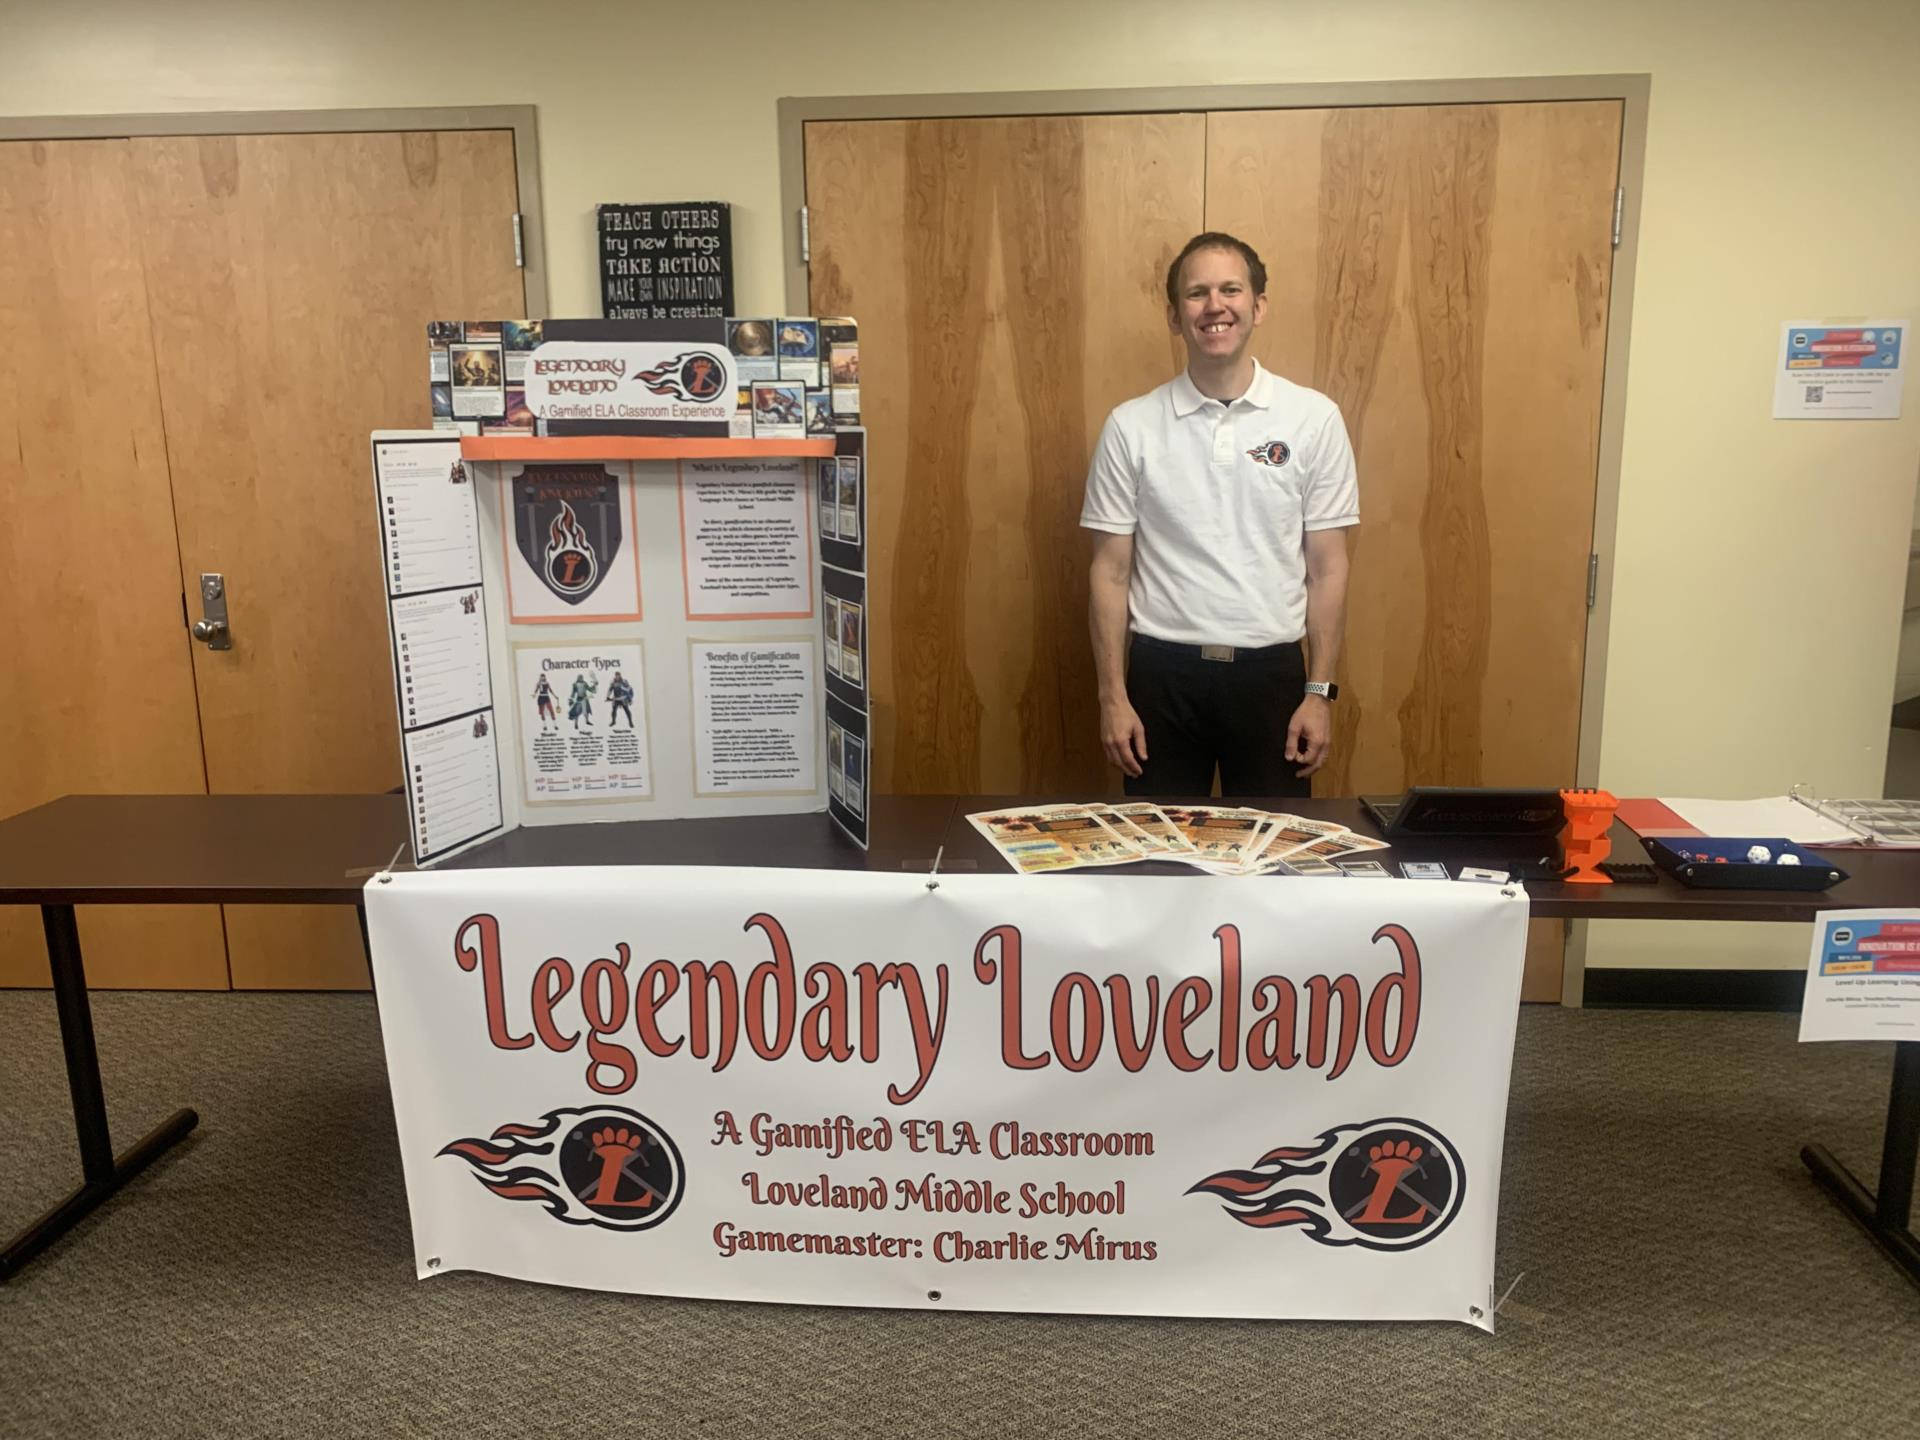 Charlie Mirus and Legendary Loveland display